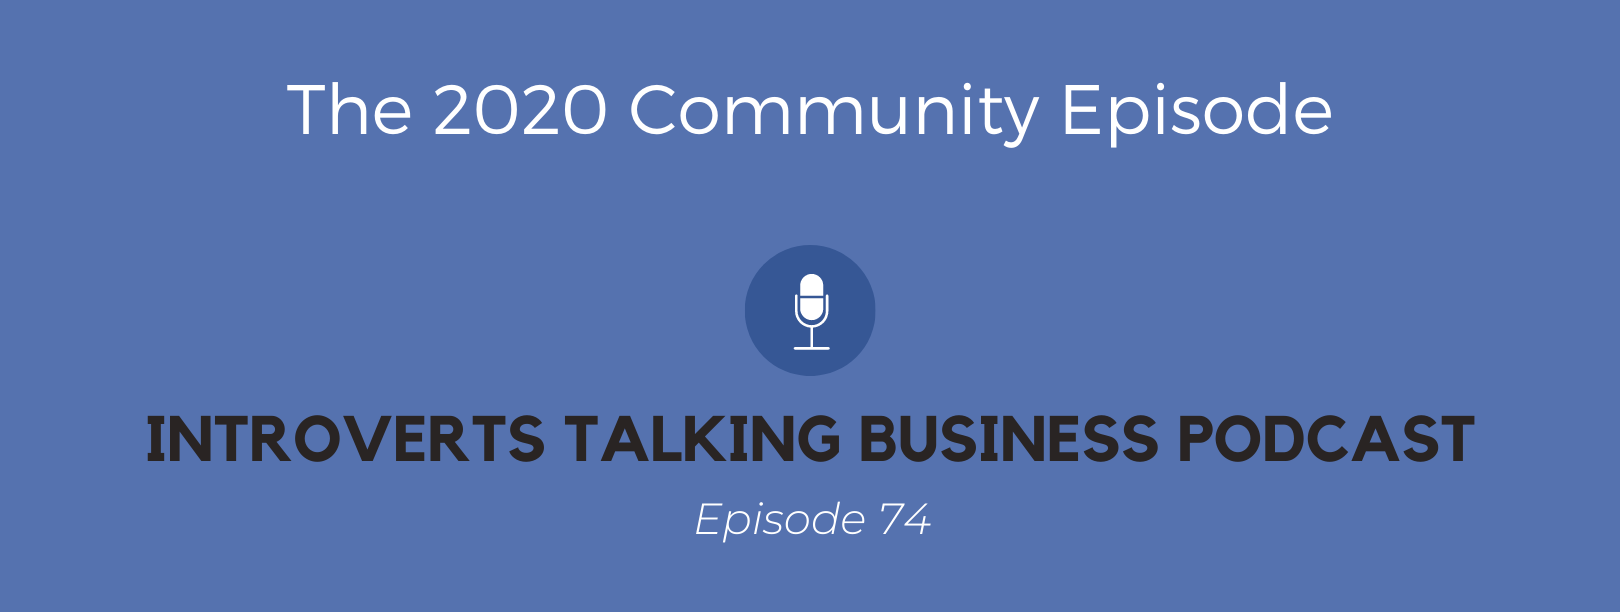 Episode 74 of the Introverts Talking Business Podcast, a community episode